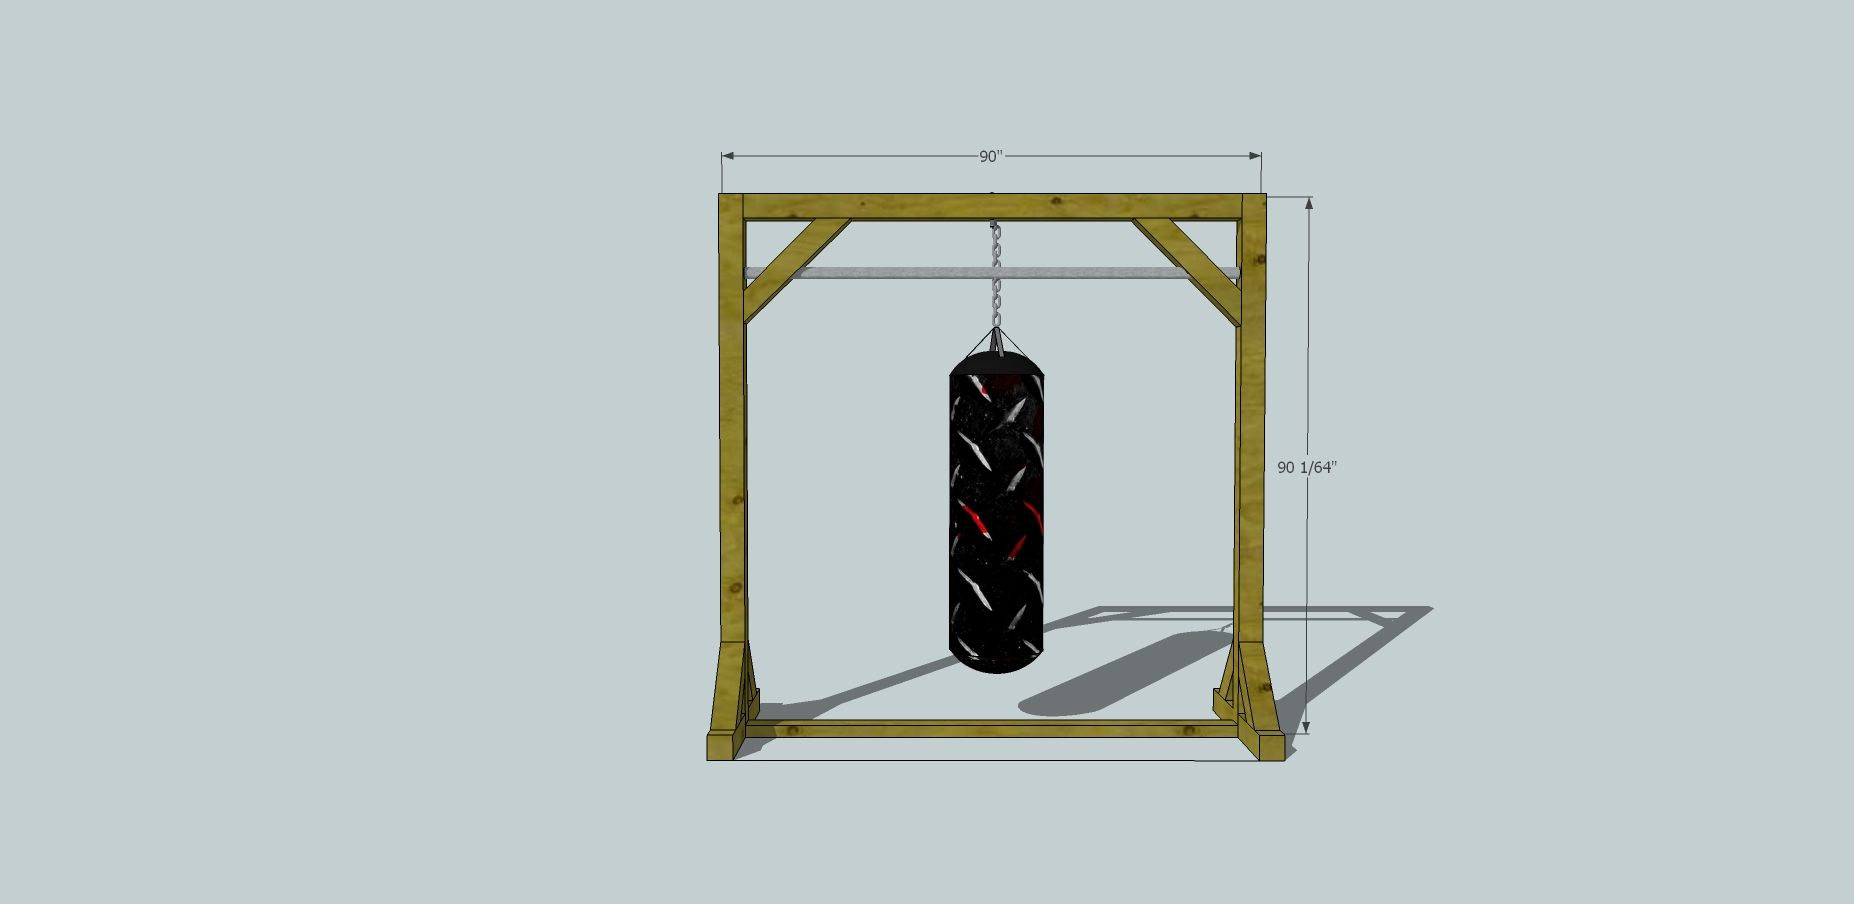 diy punching bag stand - Bing Images